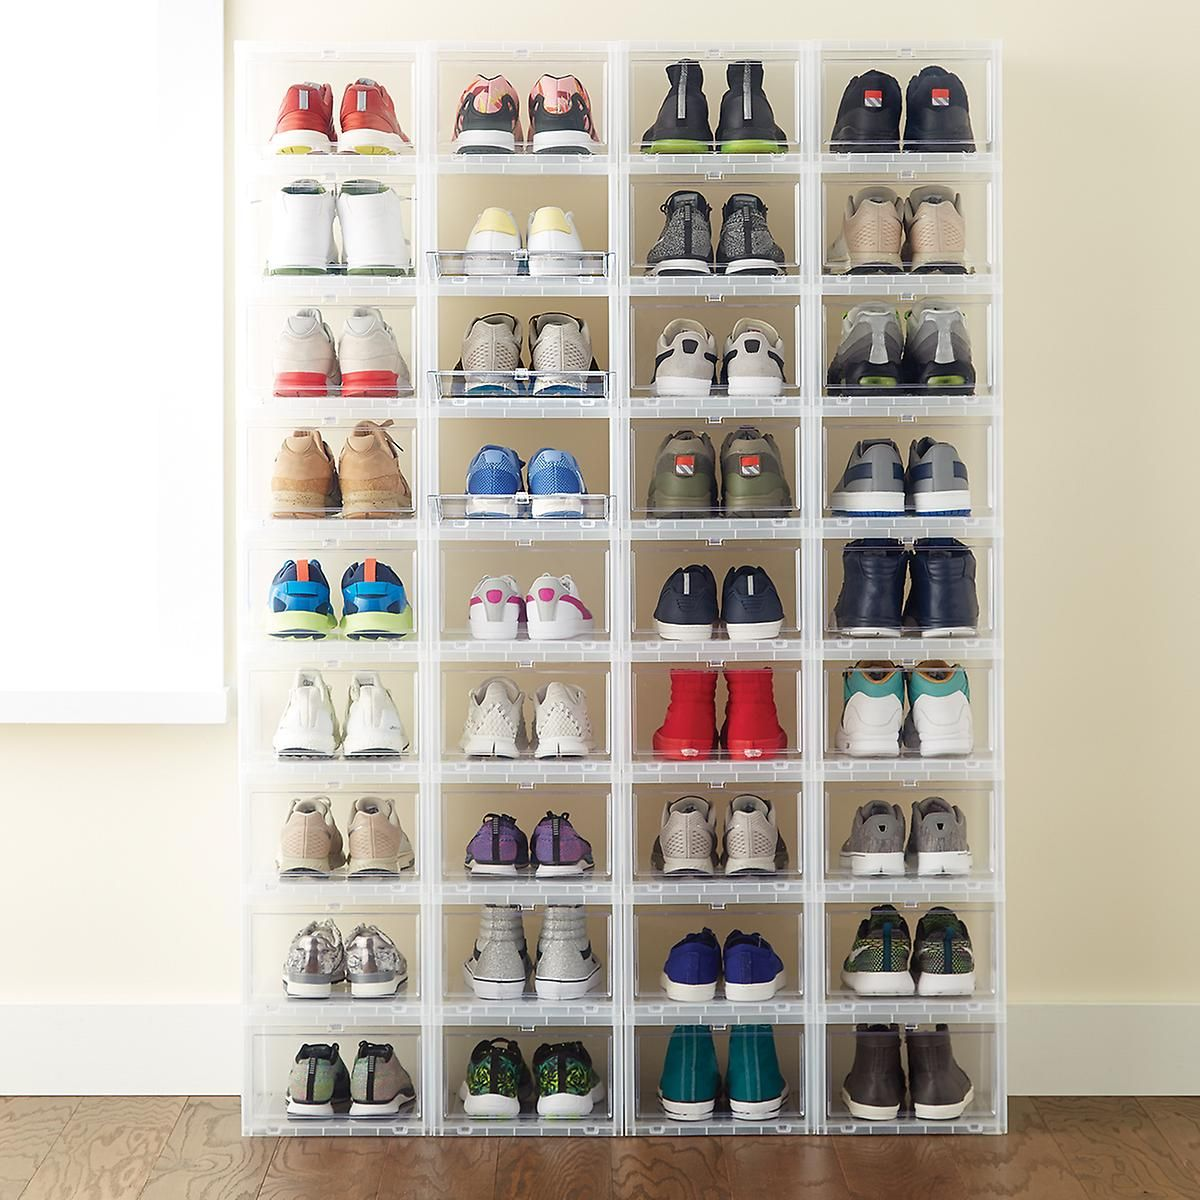 Sneakerhead Storage Ideas: Spotlight On Maggie Sauls